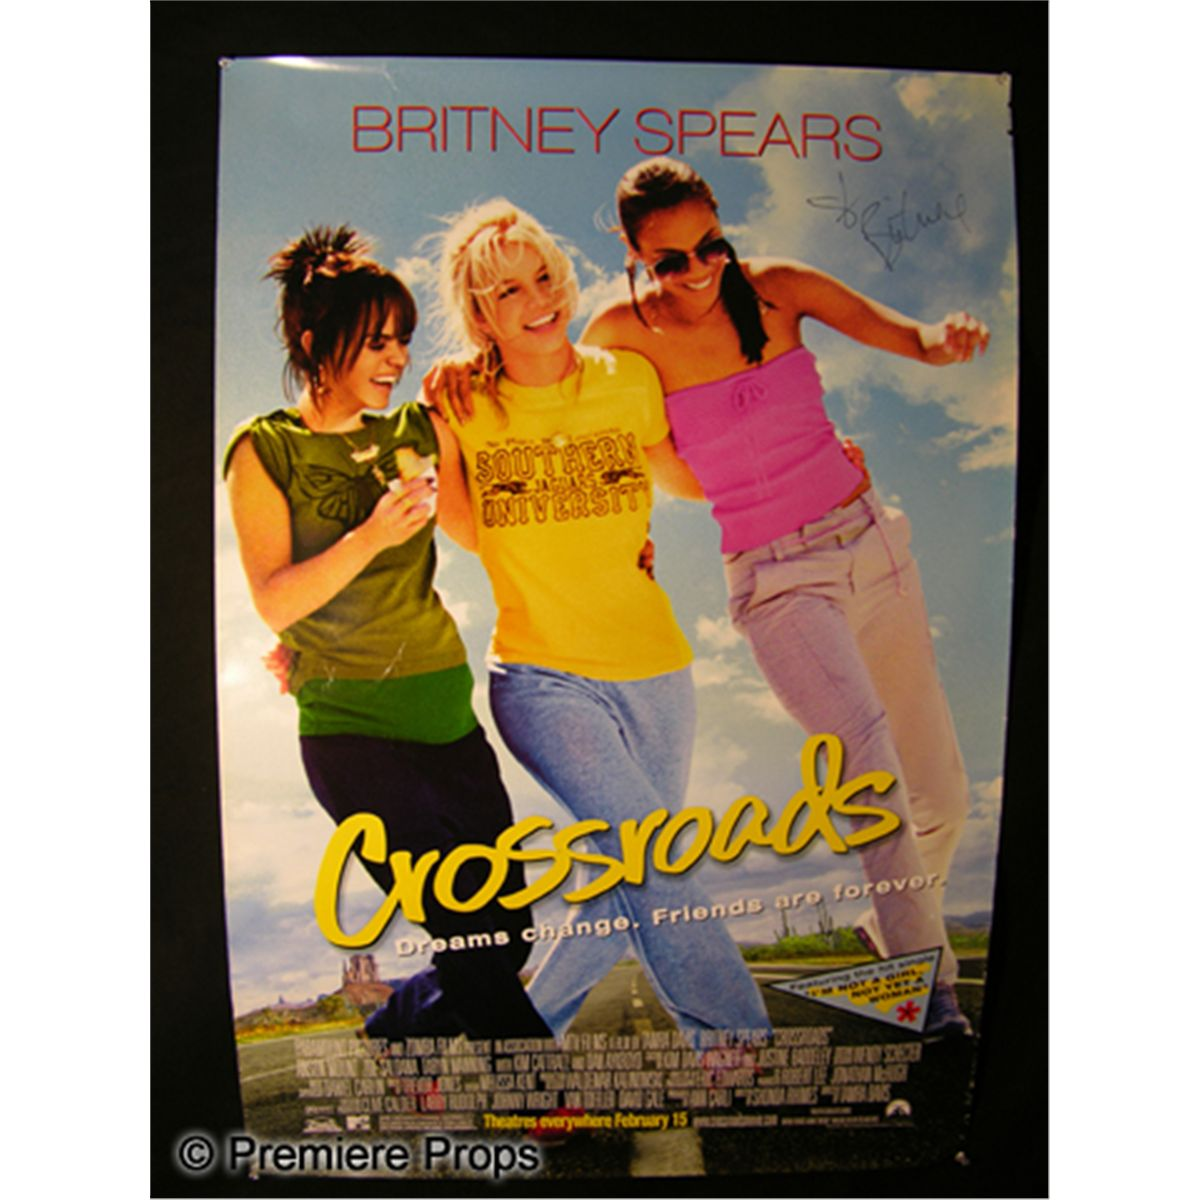 britney spears signed crossroads poster